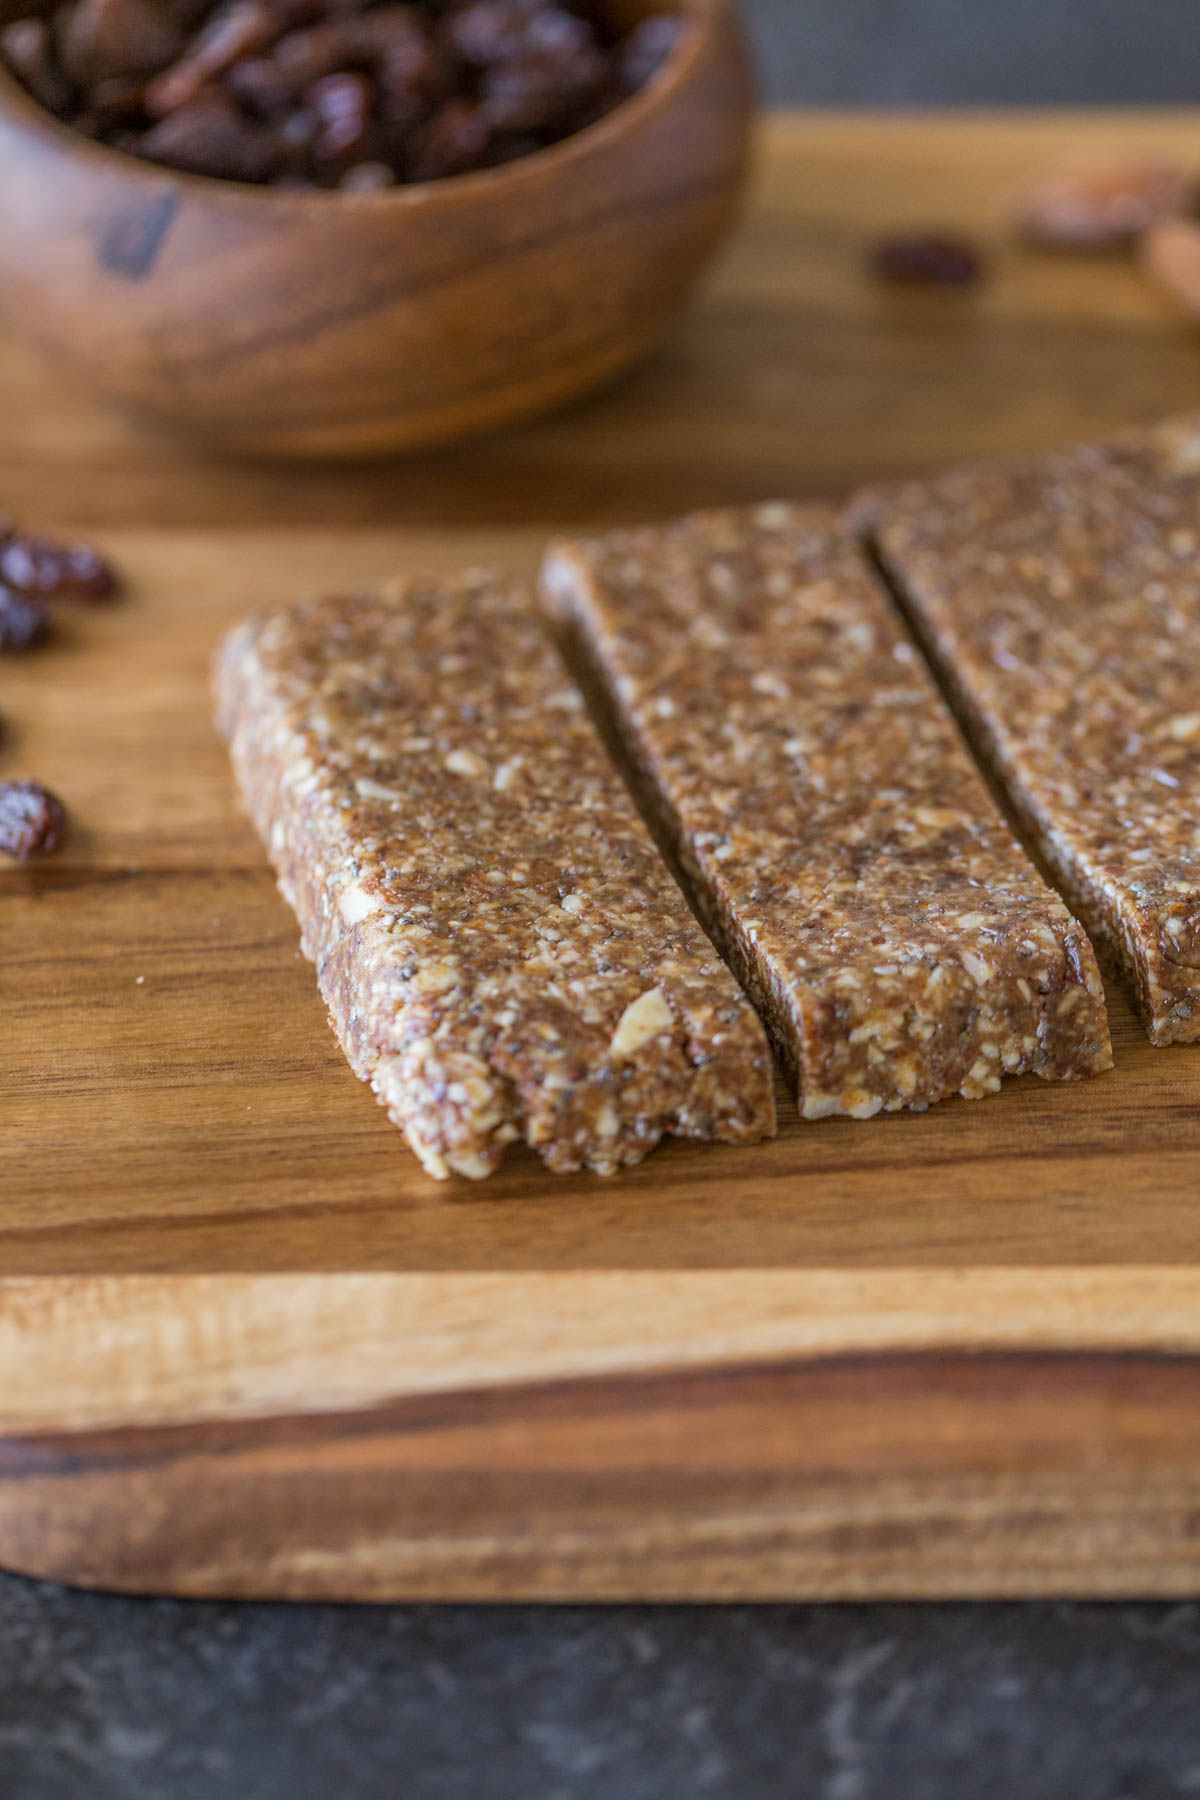 Five Ingredient No Bake Energy Bars on a cutting board, along with a small wood bowl of raisins.